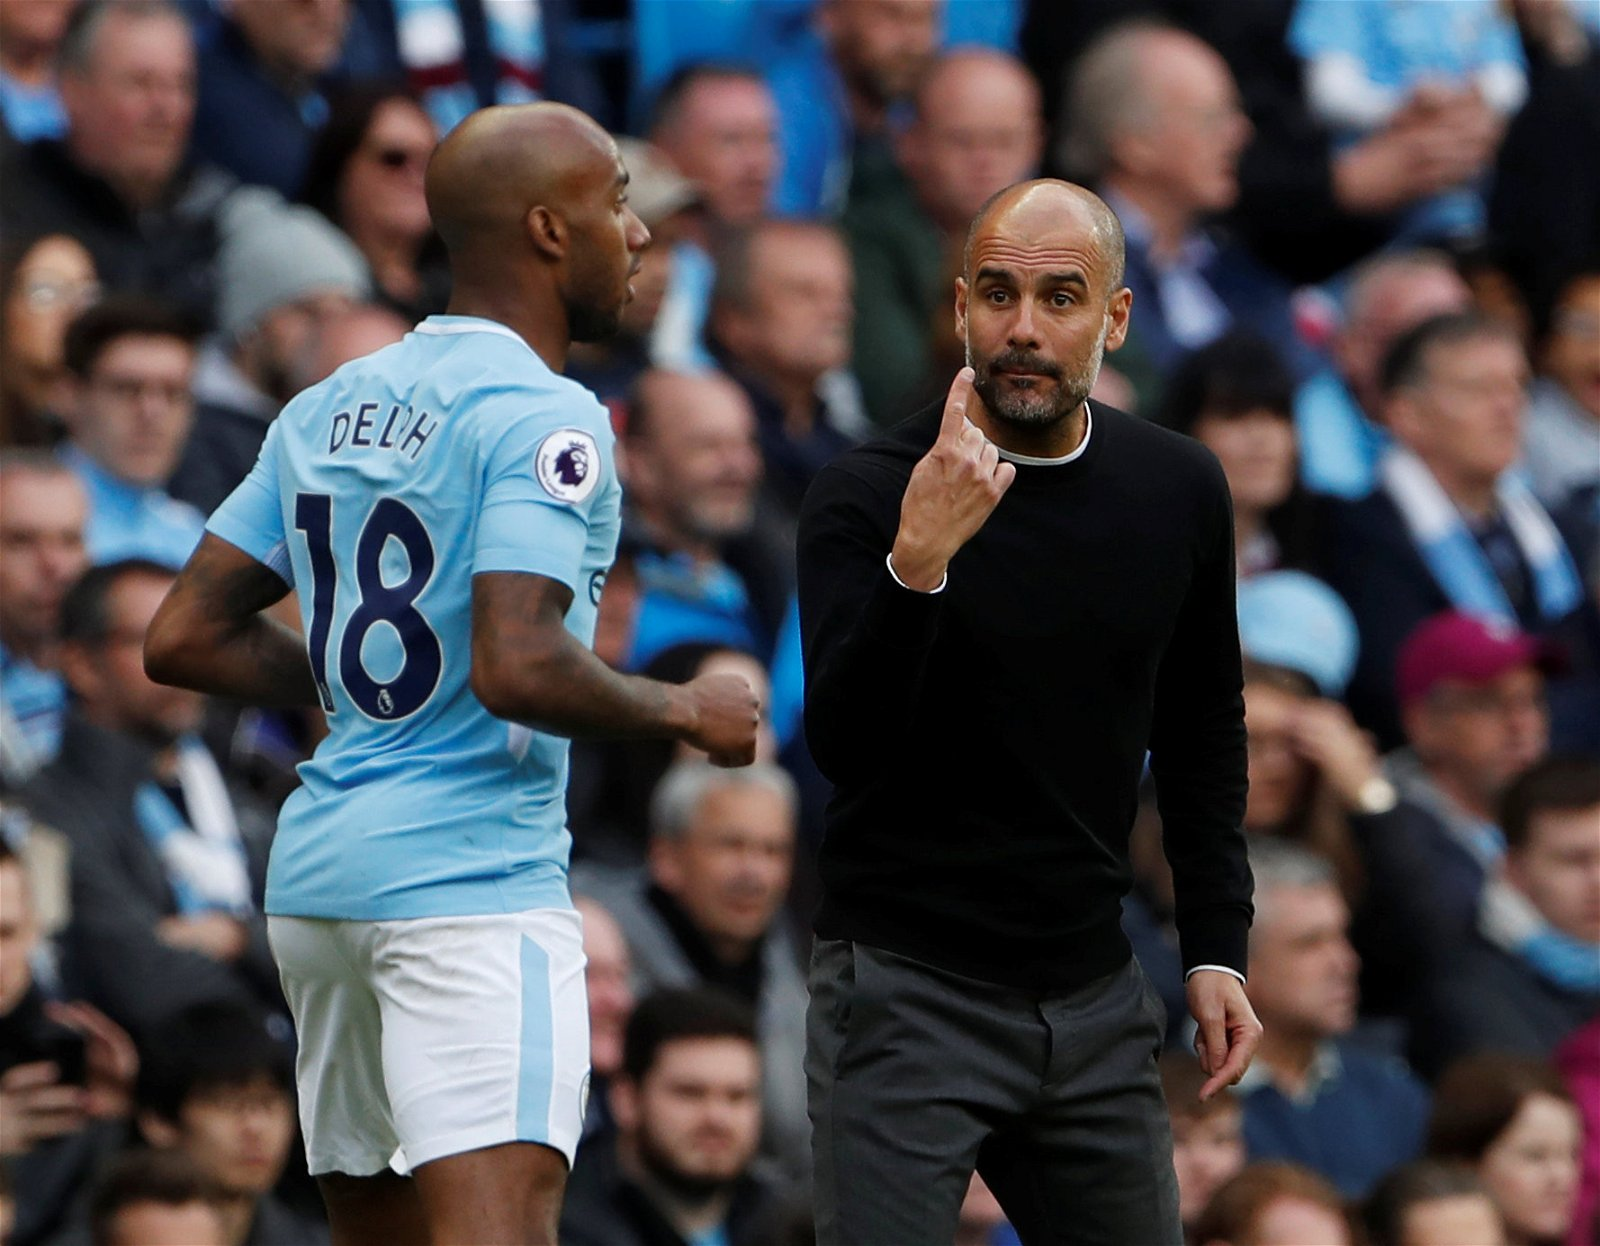 Pep Guardiola gives orders to Fabian Delph